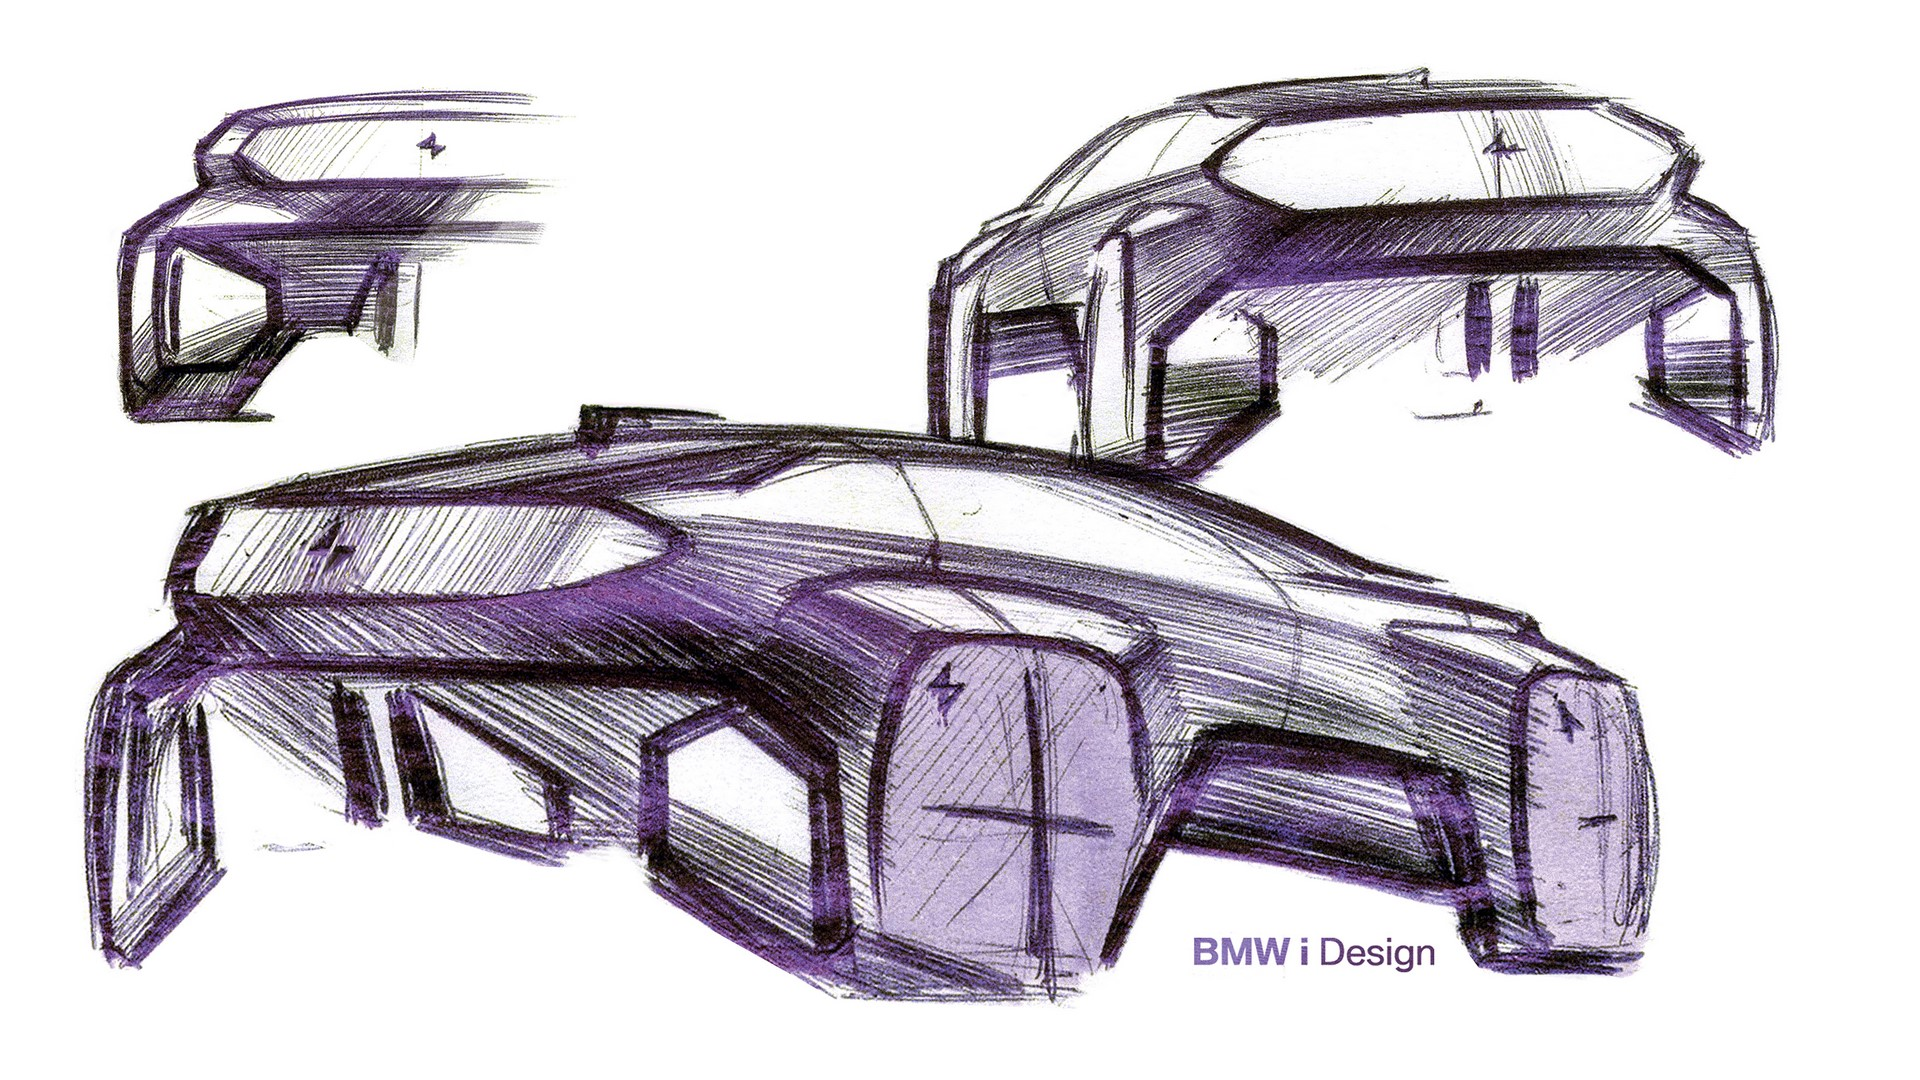 BMW Vision iNext Concept (102)